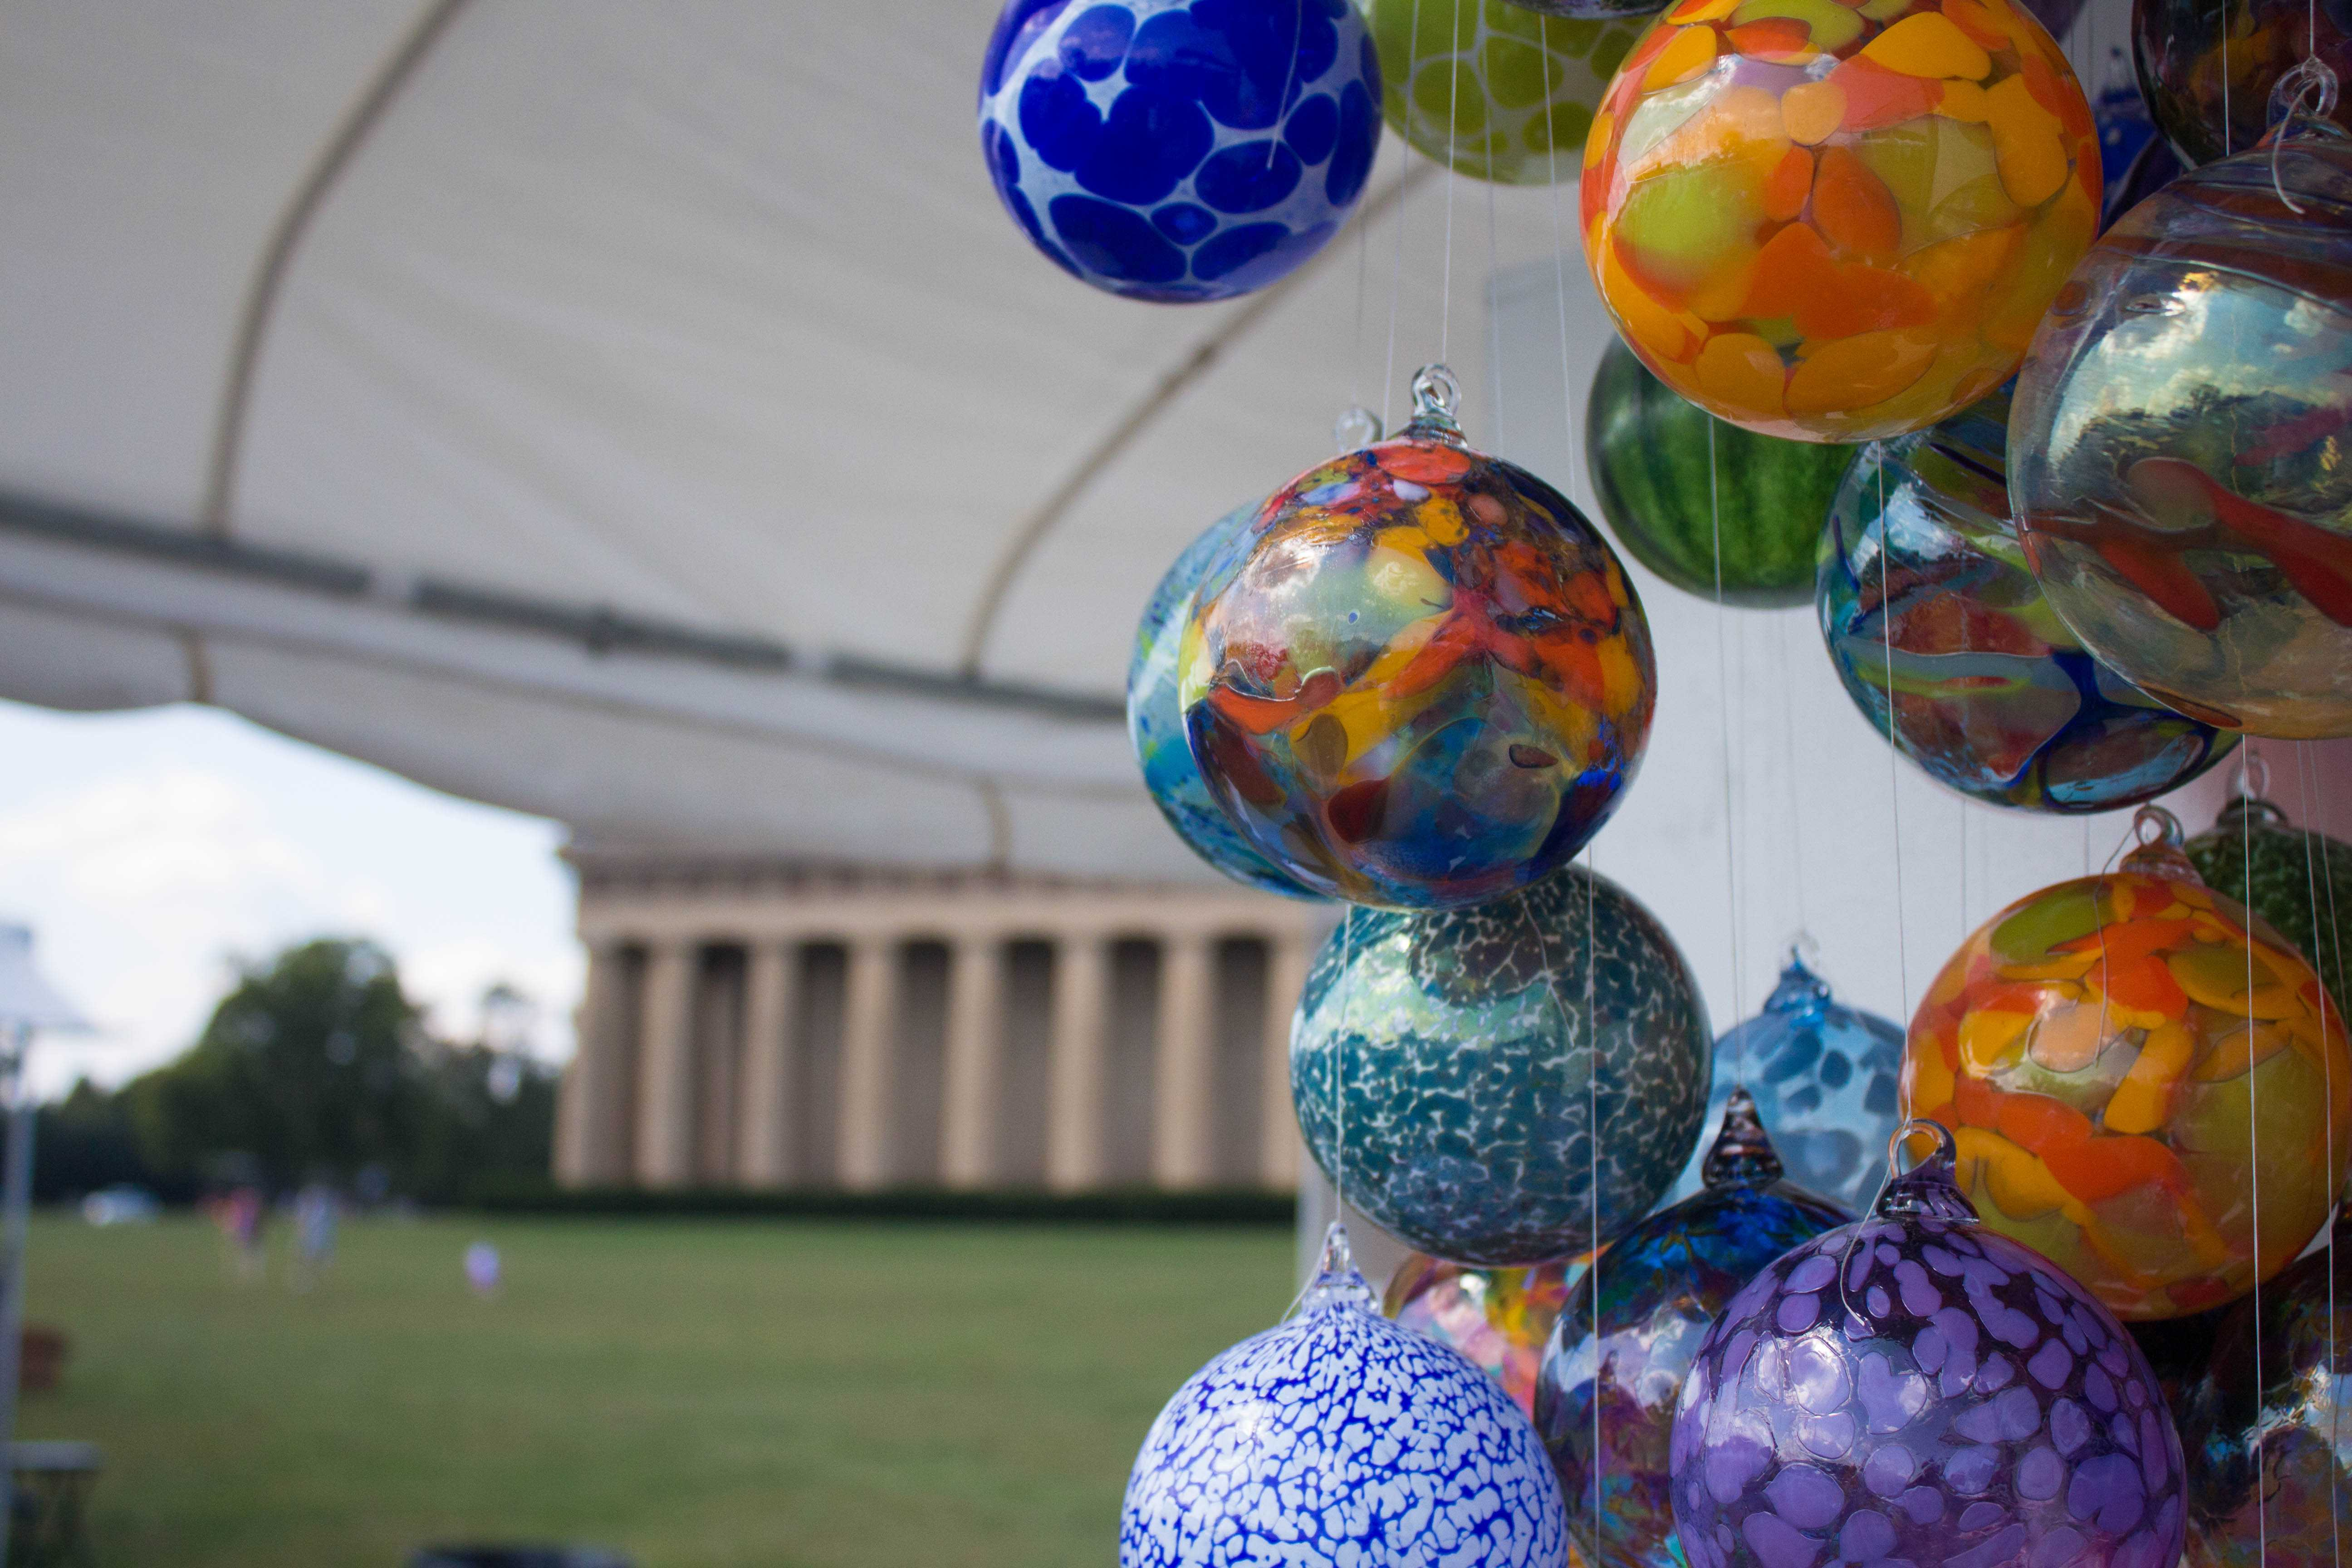 Artists display their work at the 39th Annual Fall Tennessee Craft Fair in Centennial Park on September 22, 23, and 24.